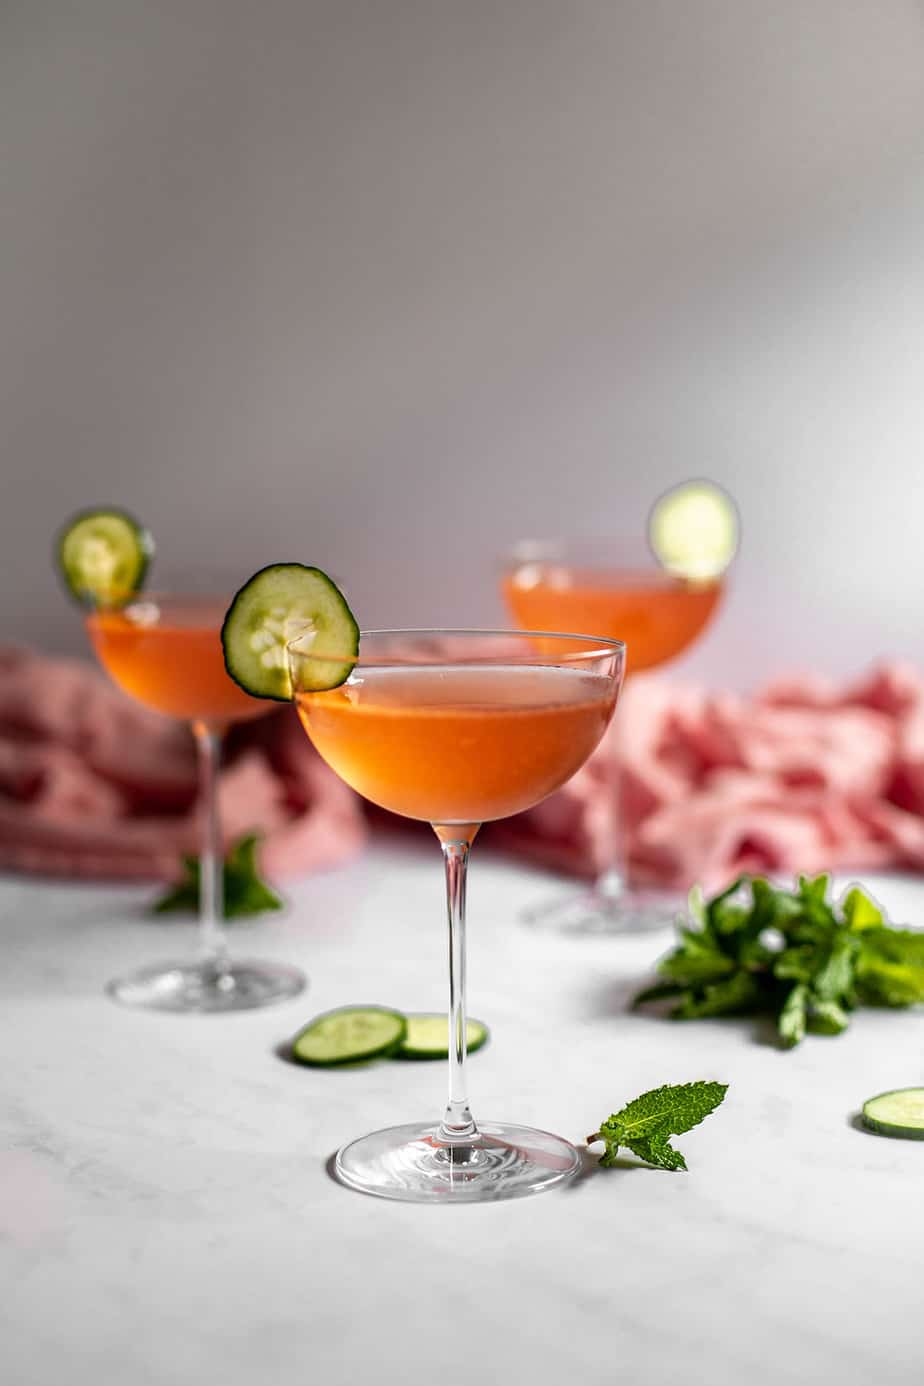 a straight on view of three coupe glasses filled with pink liquid and garnished with cucumber slices